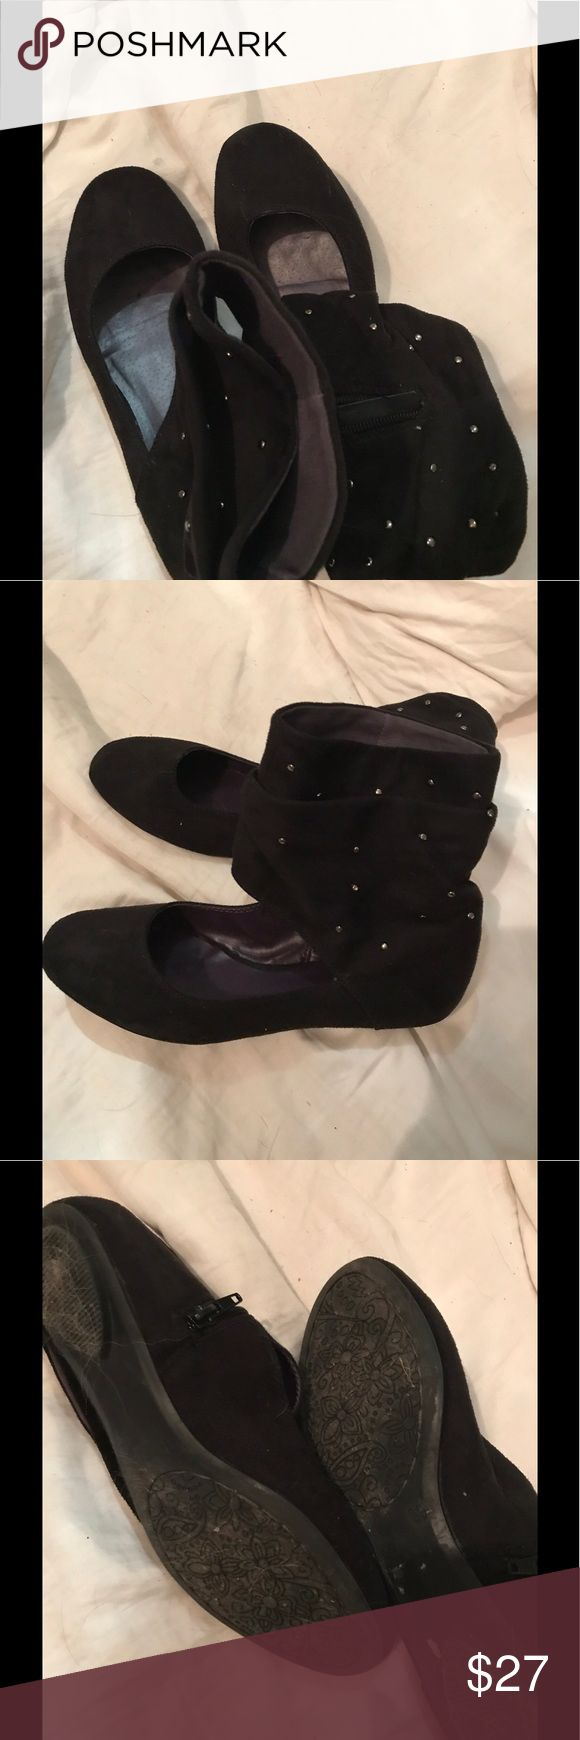 Slouchy Black Faux Suede Studded Flats This shoes are really cute! I tried wearing them once but never left the house in them. They really don't fit me, I wasn't sure what size a 39 was. The uppers are in EUC and the soles show very little wear. Graceland Shoes Flats & Loafers